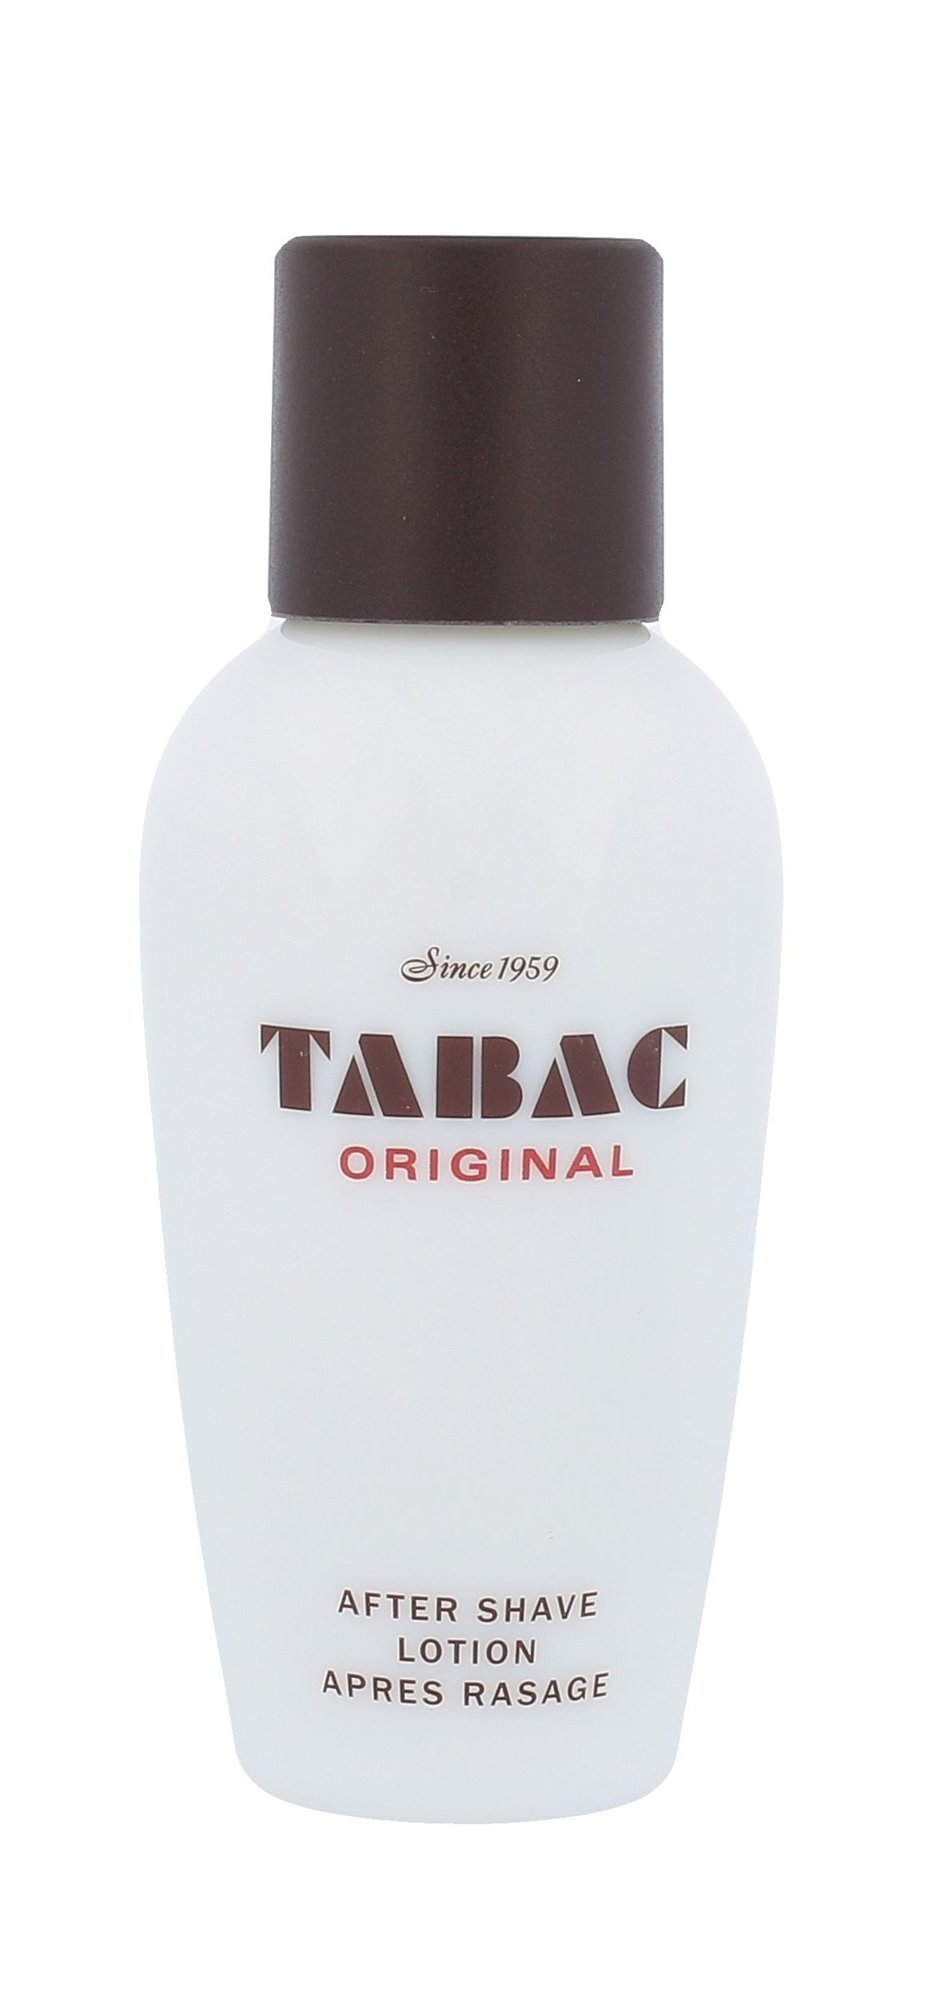 TABAC Original Aftershave 75ml